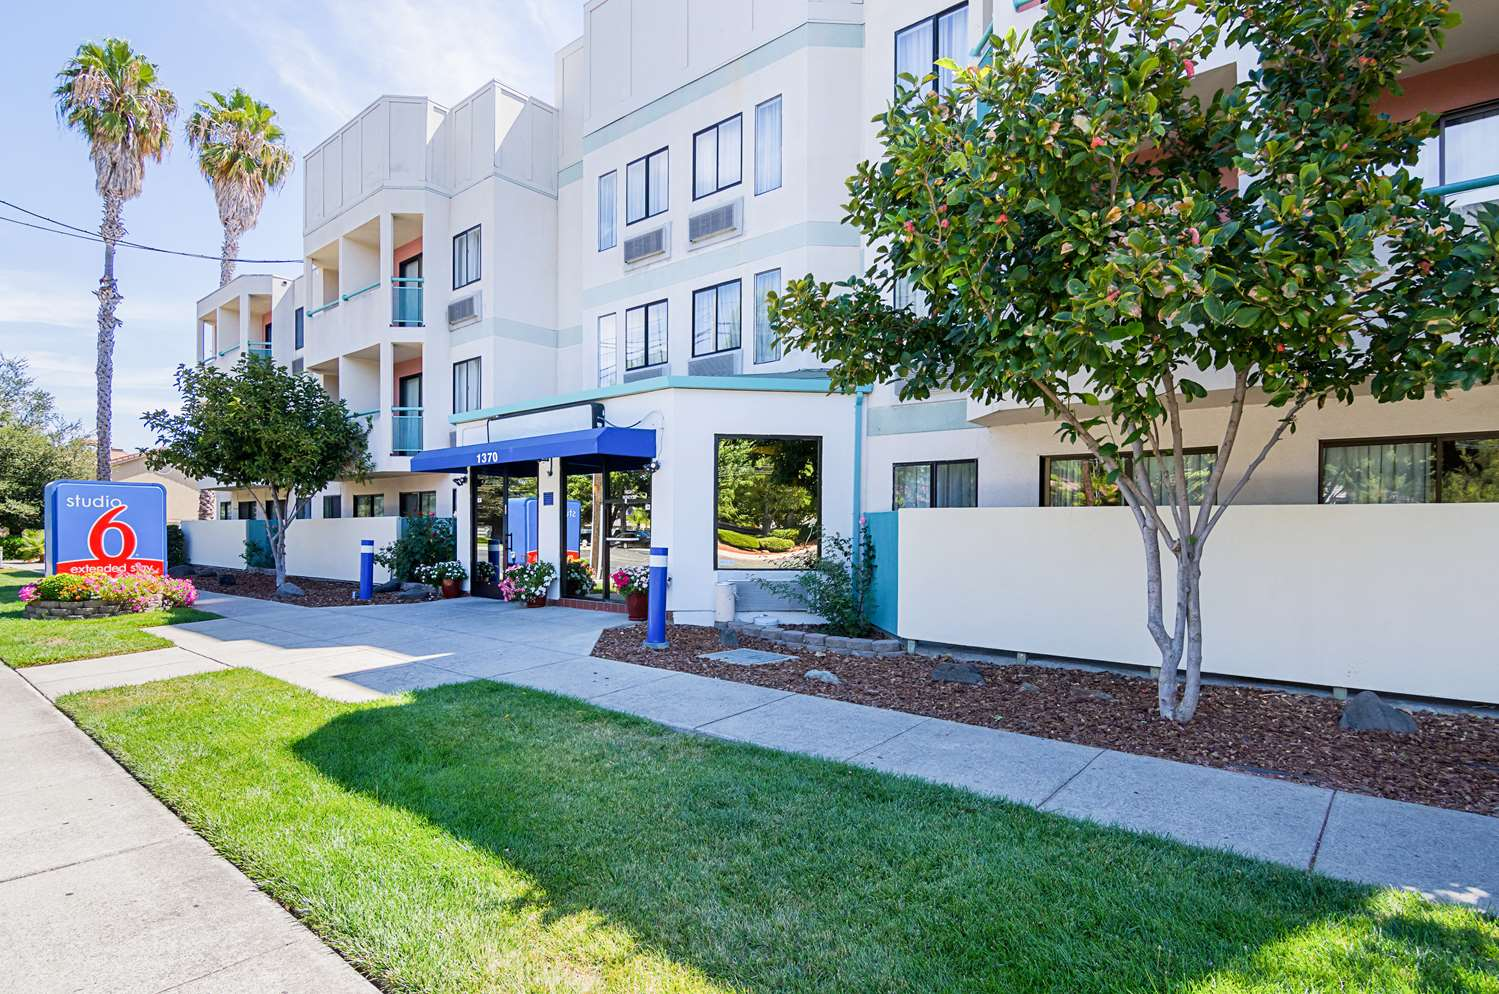 Exterior view - Studio 6 Extended Stay Hotel Concord